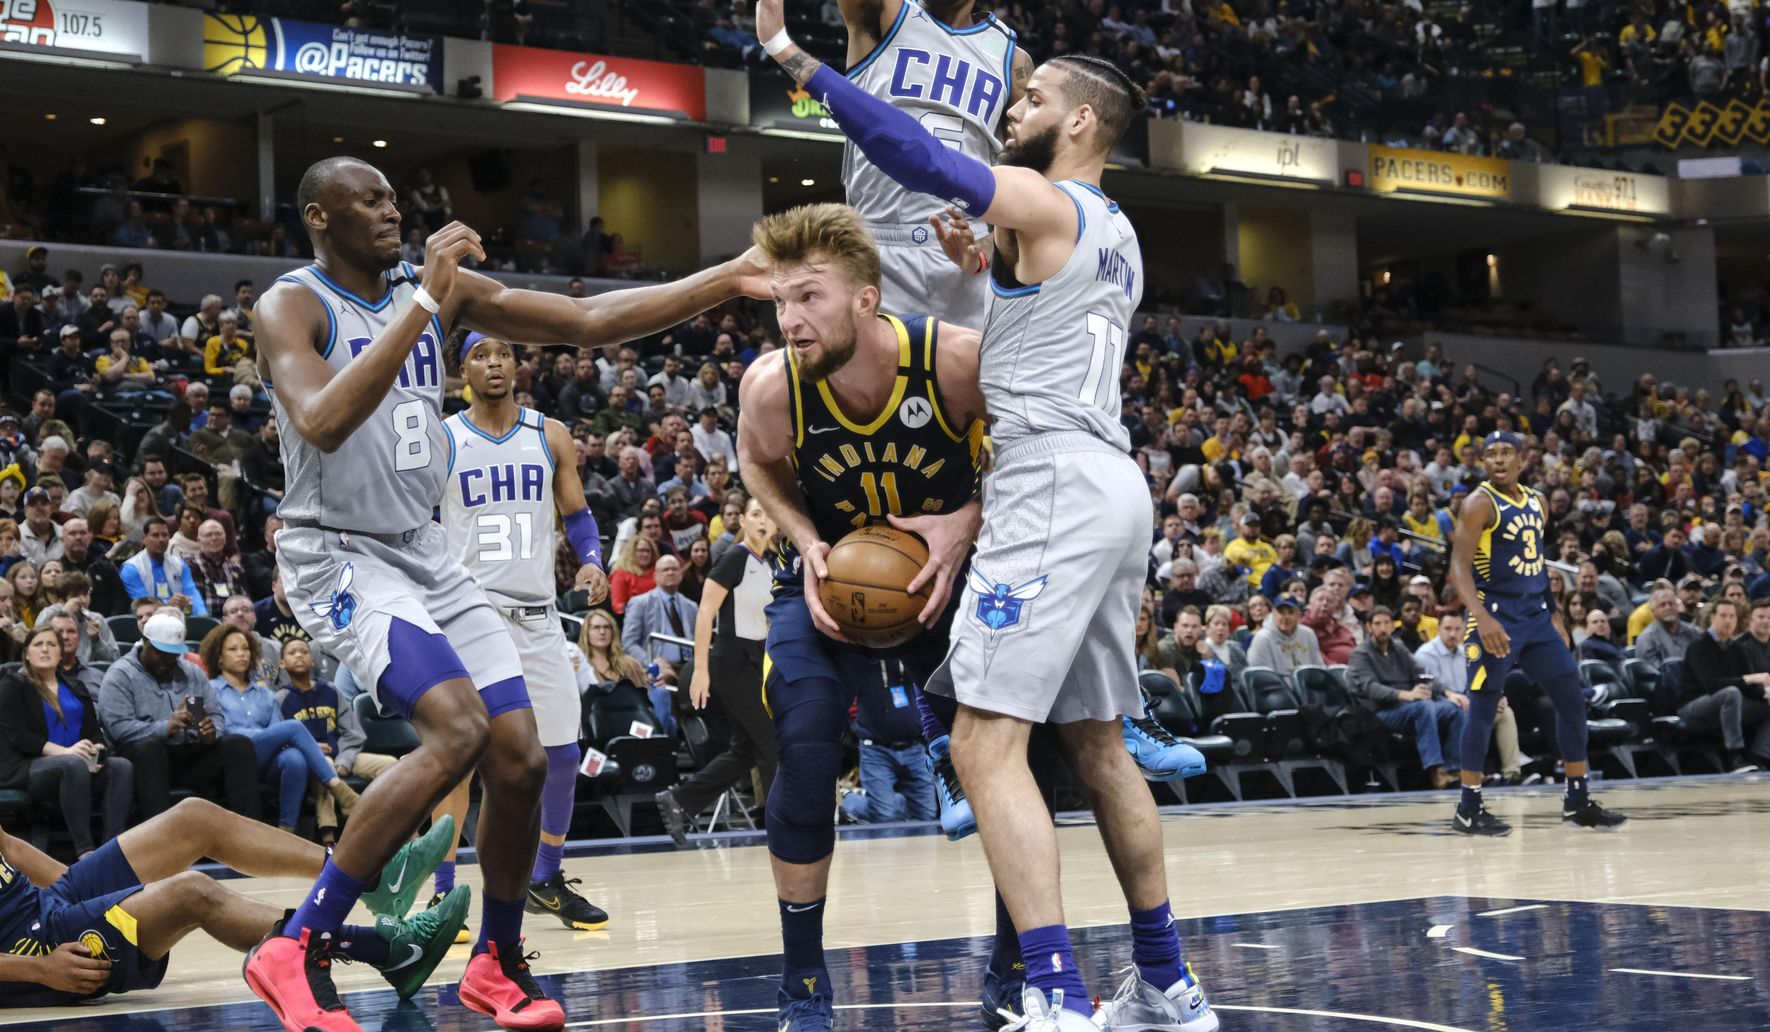 Hornets_pacers_basketball_03088_c0-248-5932-3706_s1770x1032